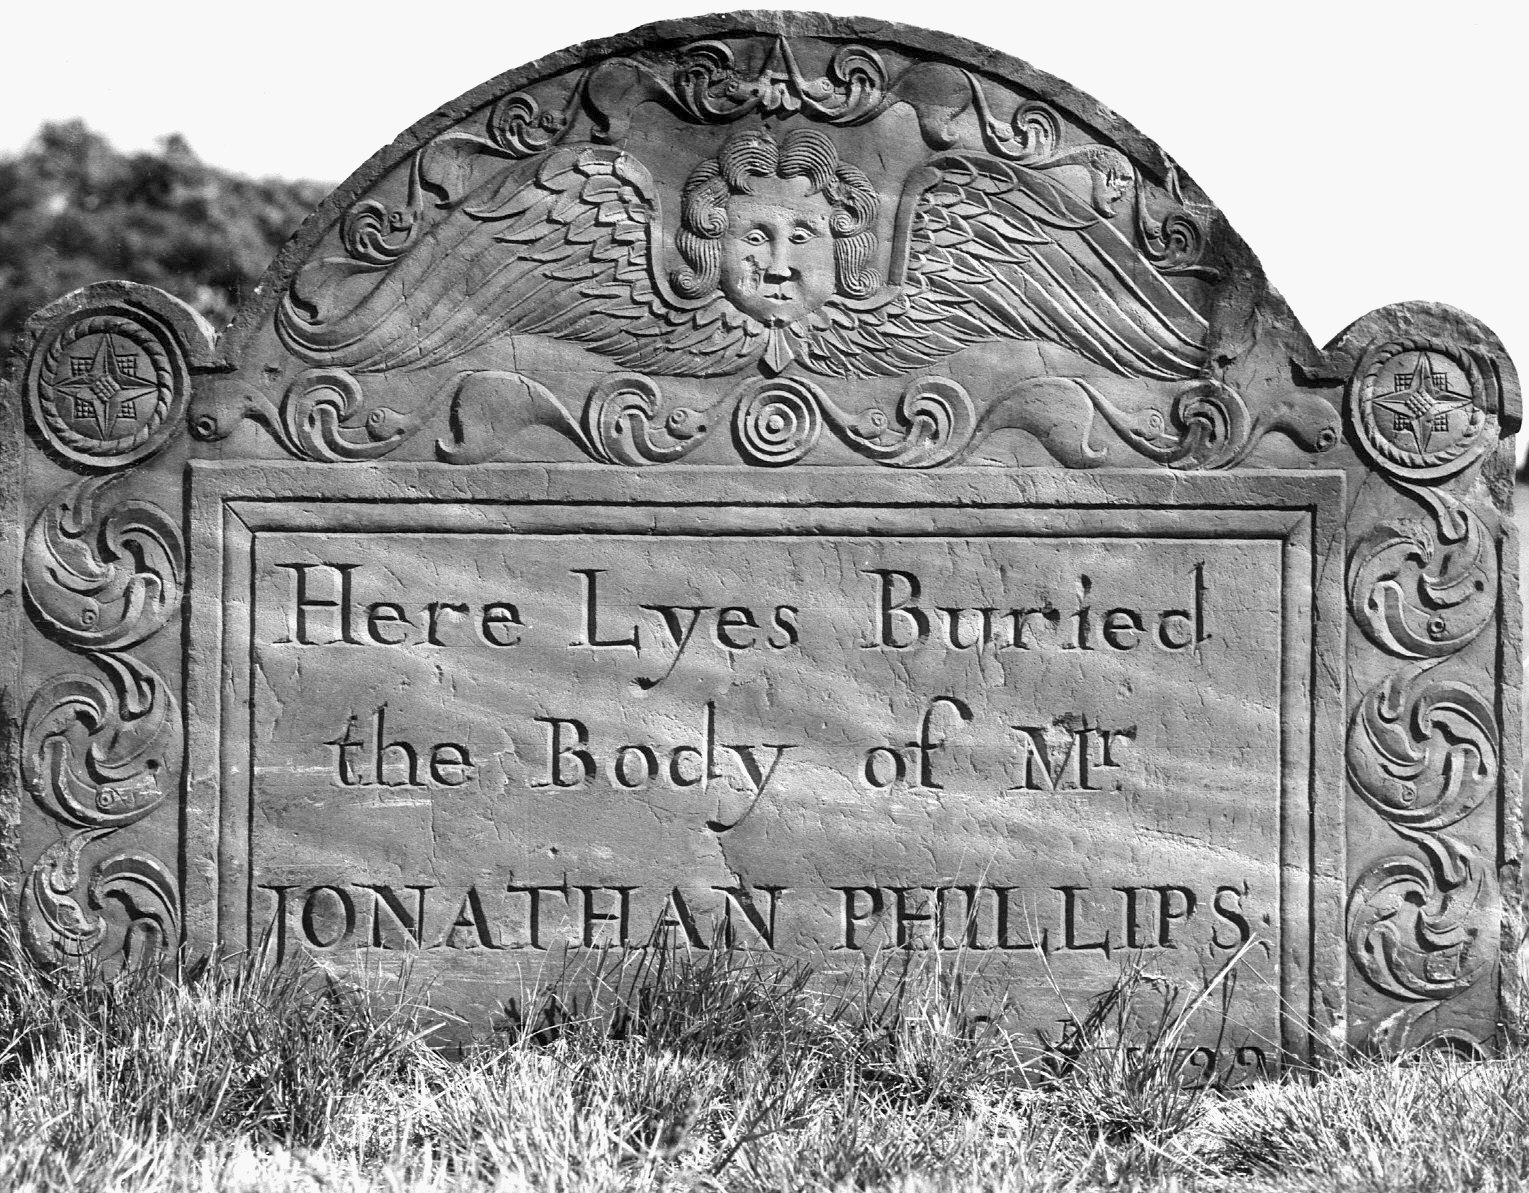 Phillips, Jonathan